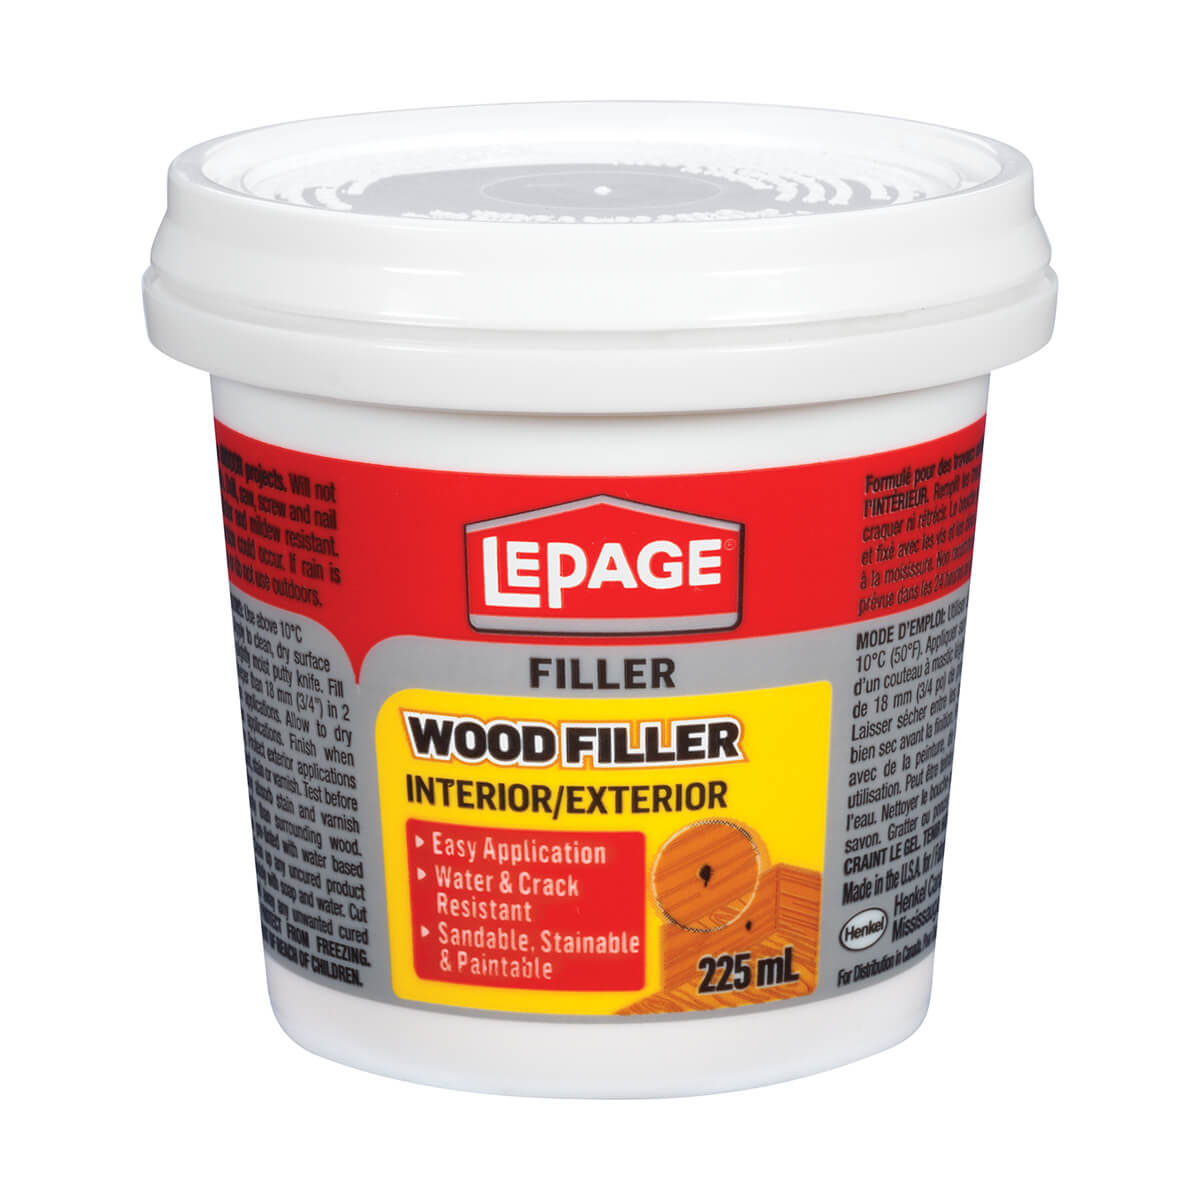 Wood Filler - Lepage - Interior and Exterior - 225ml